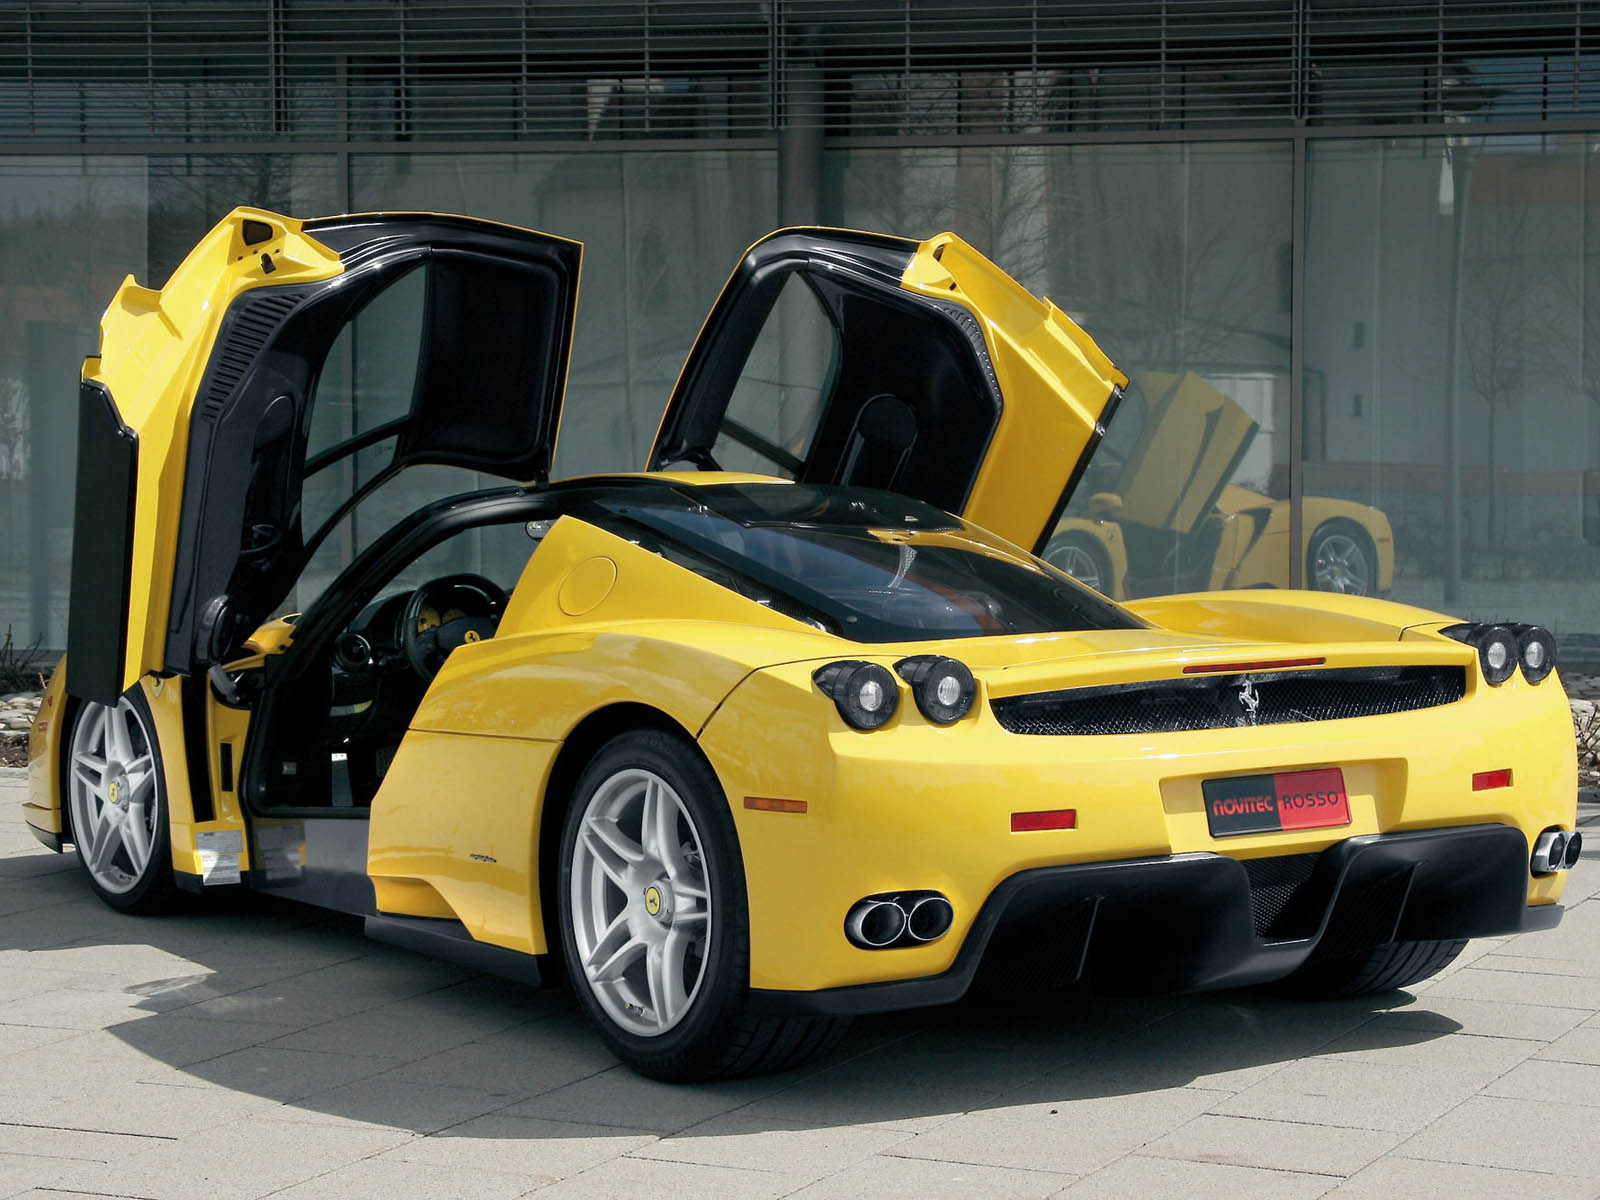 ferraris photo gallery ferrari enzo. Black Bedroom Furniture Sets. Home Design Ideas